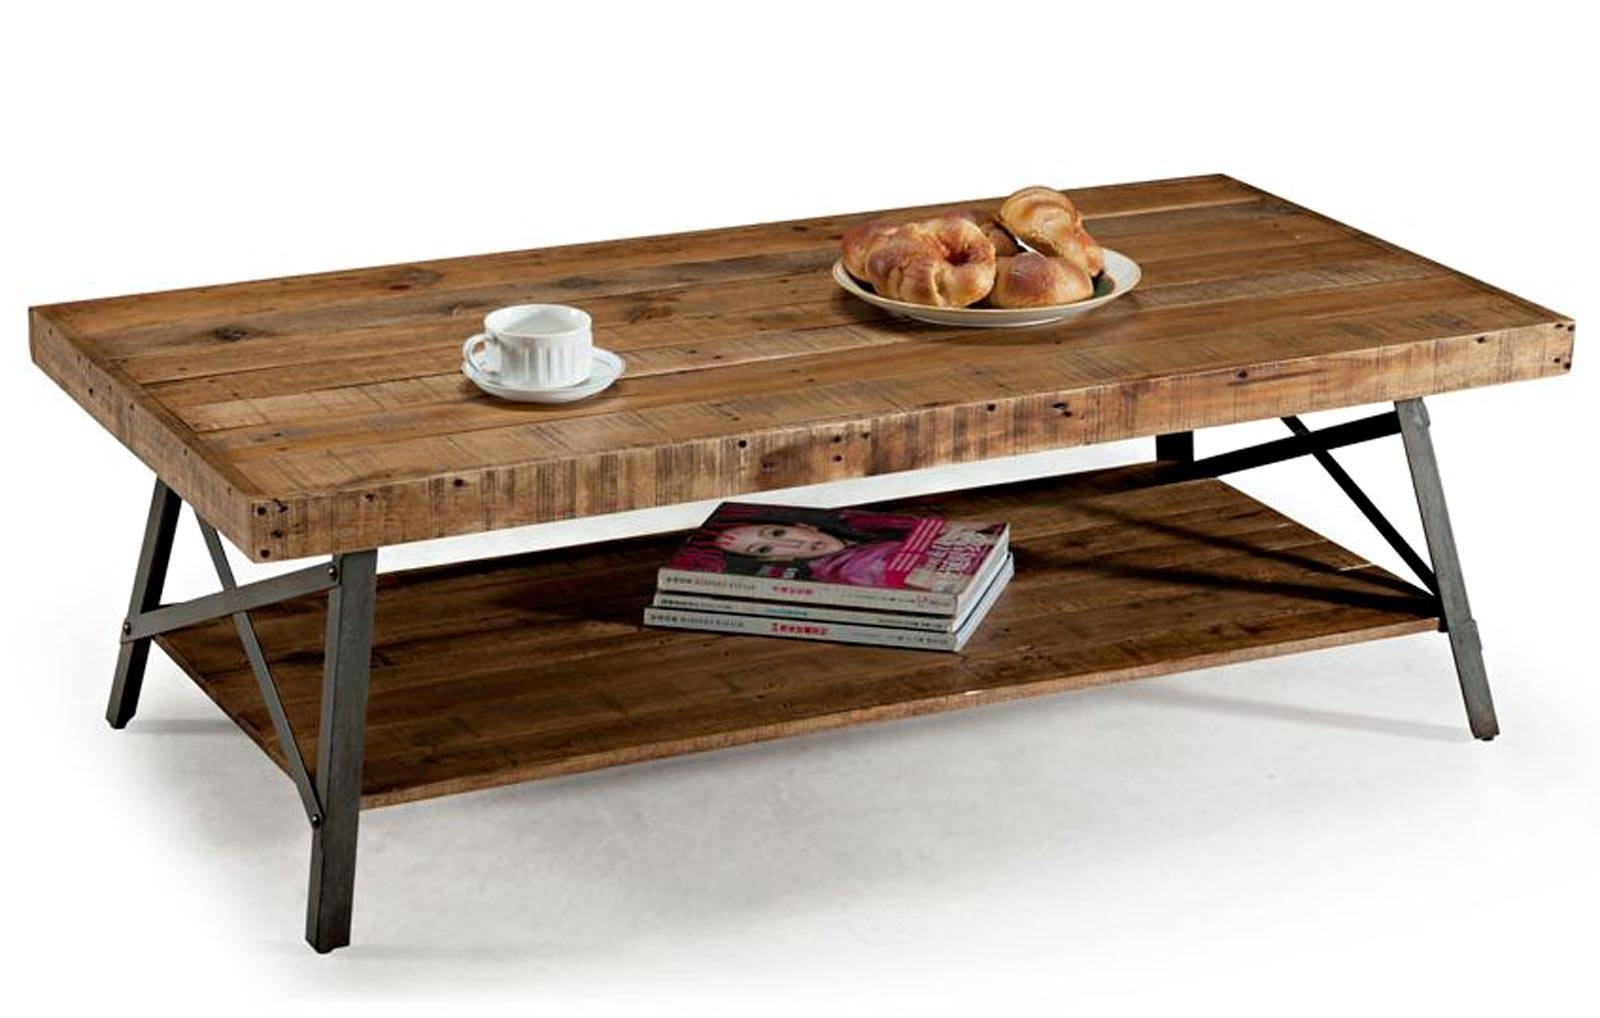 Coffee Tables Ideas: Rustic Wooden Coffee Table With Wheels Rustic regarding Rustic Wooden Coffee Tables (Image 6 of 15)